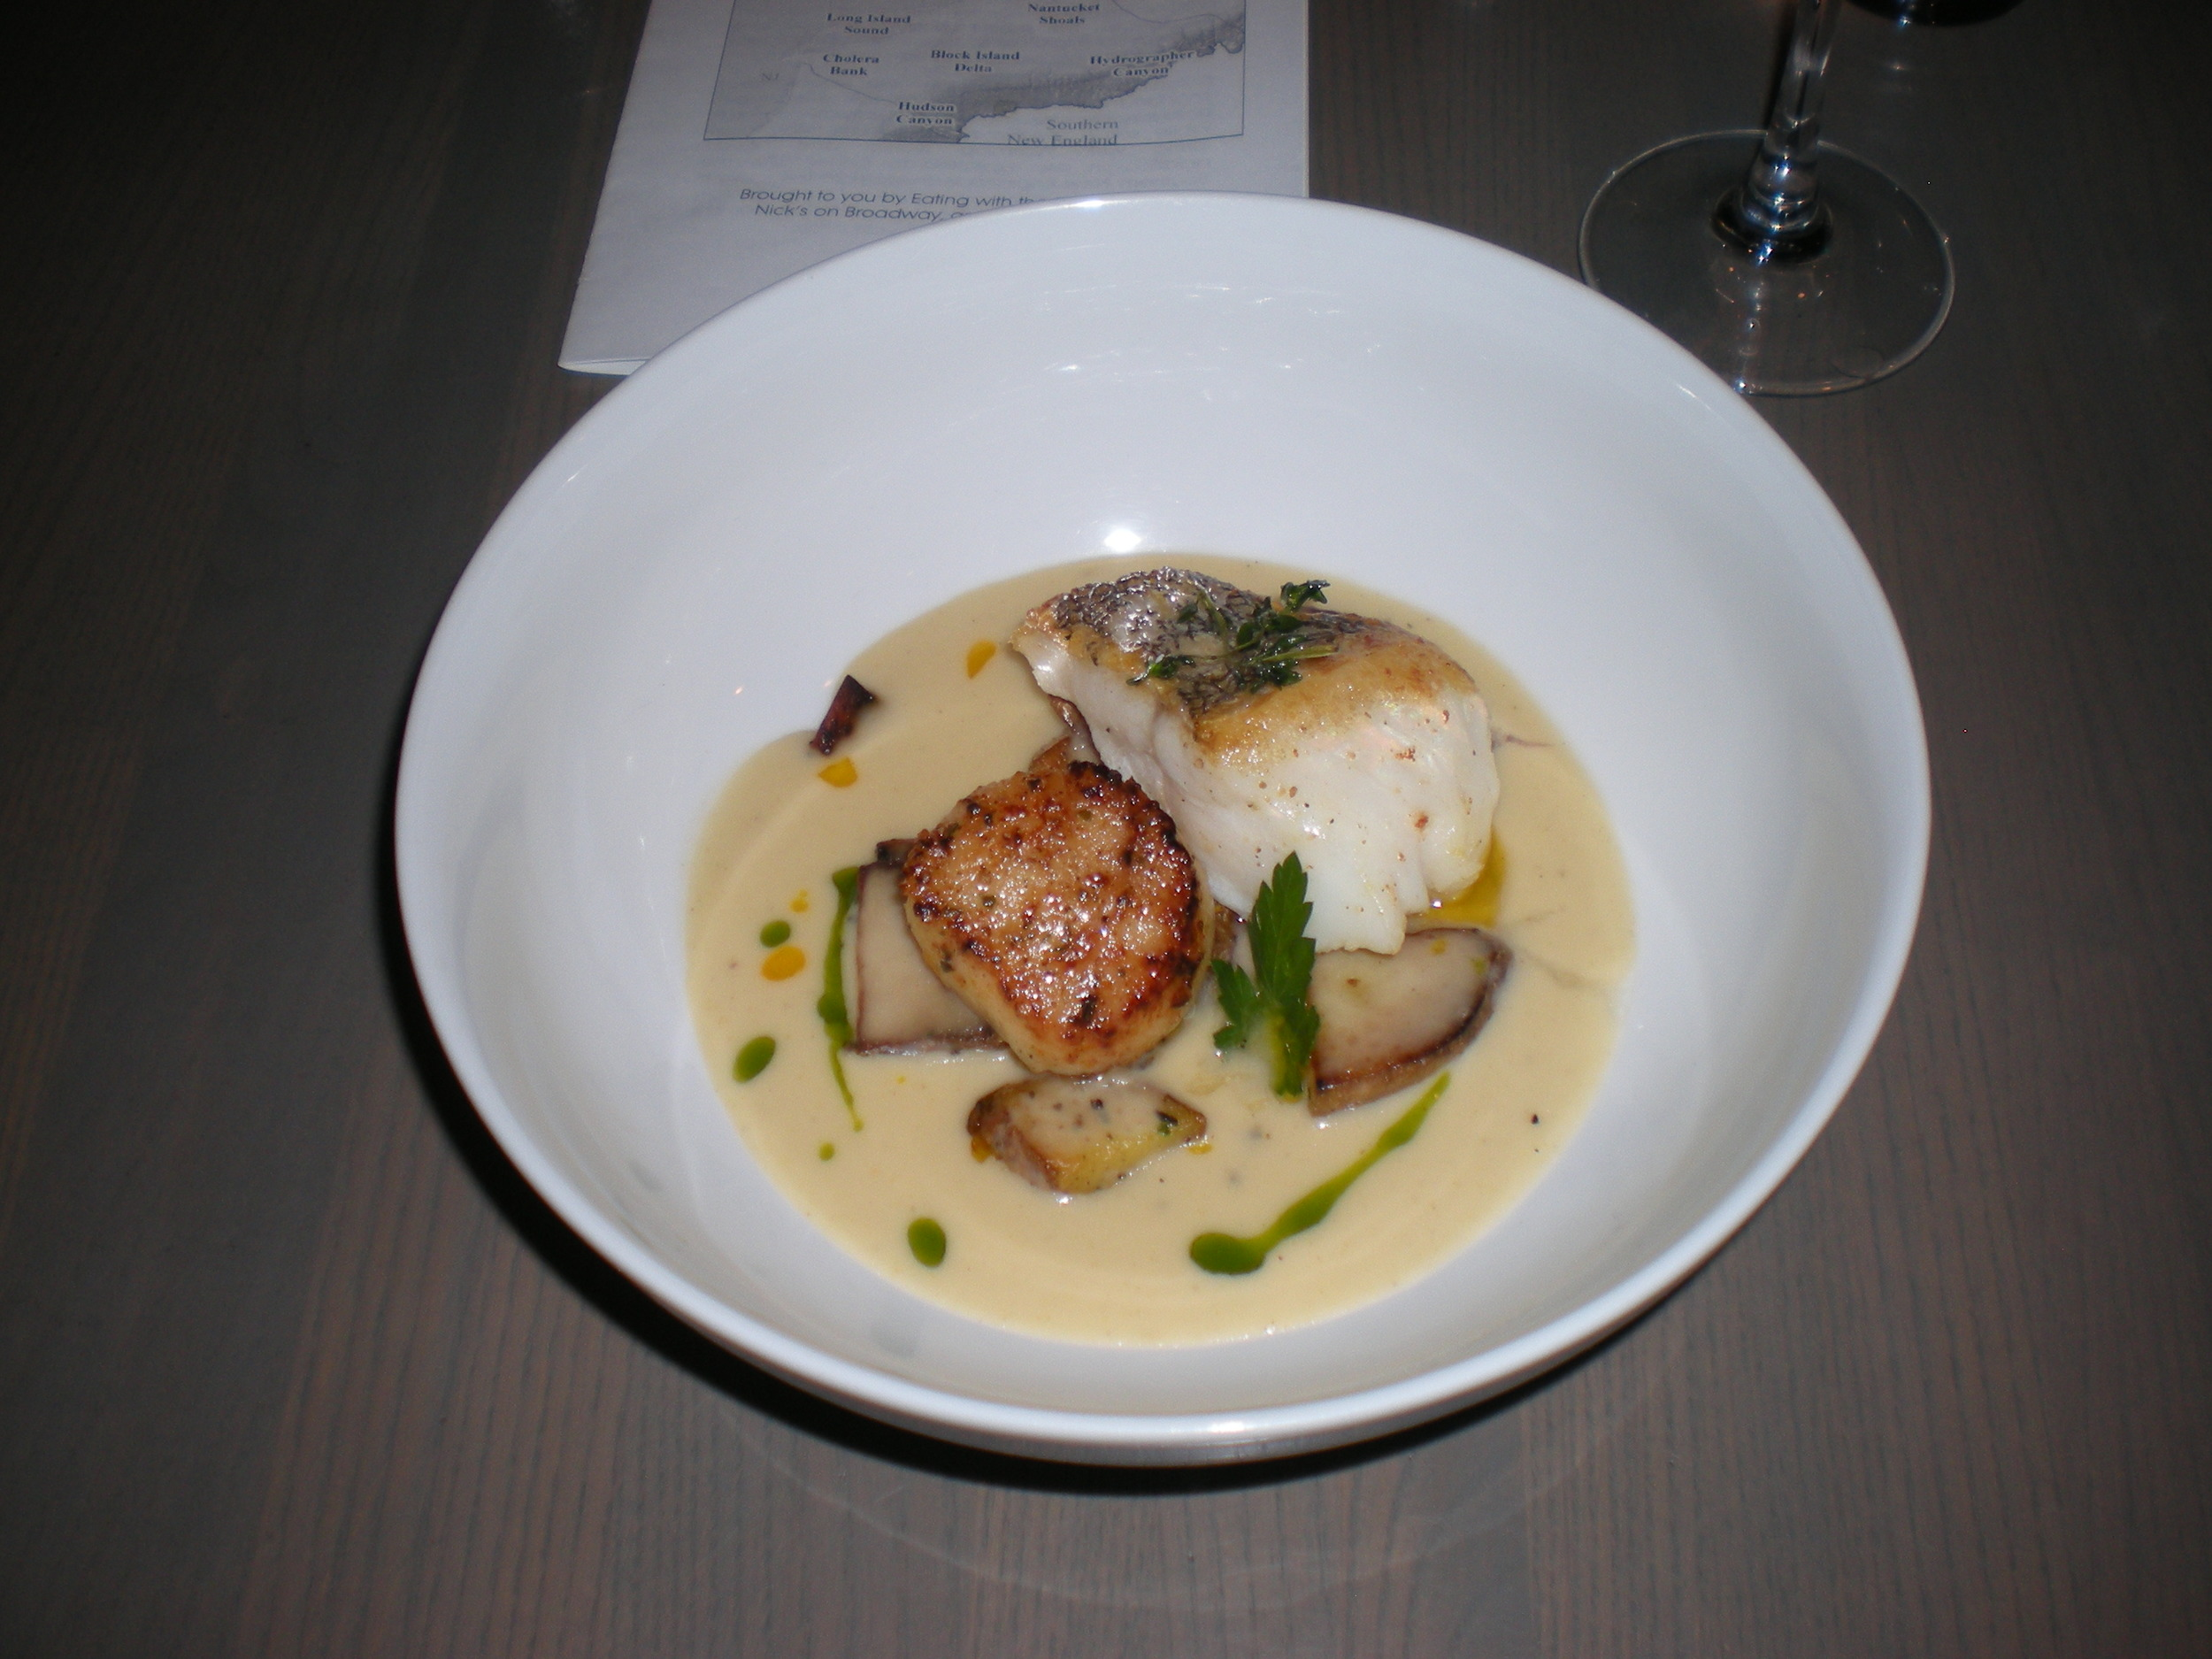 Butter-roasted Point Judith sea scallop + crispy-skin red hake with young potato, celery, lemon + thyme broth